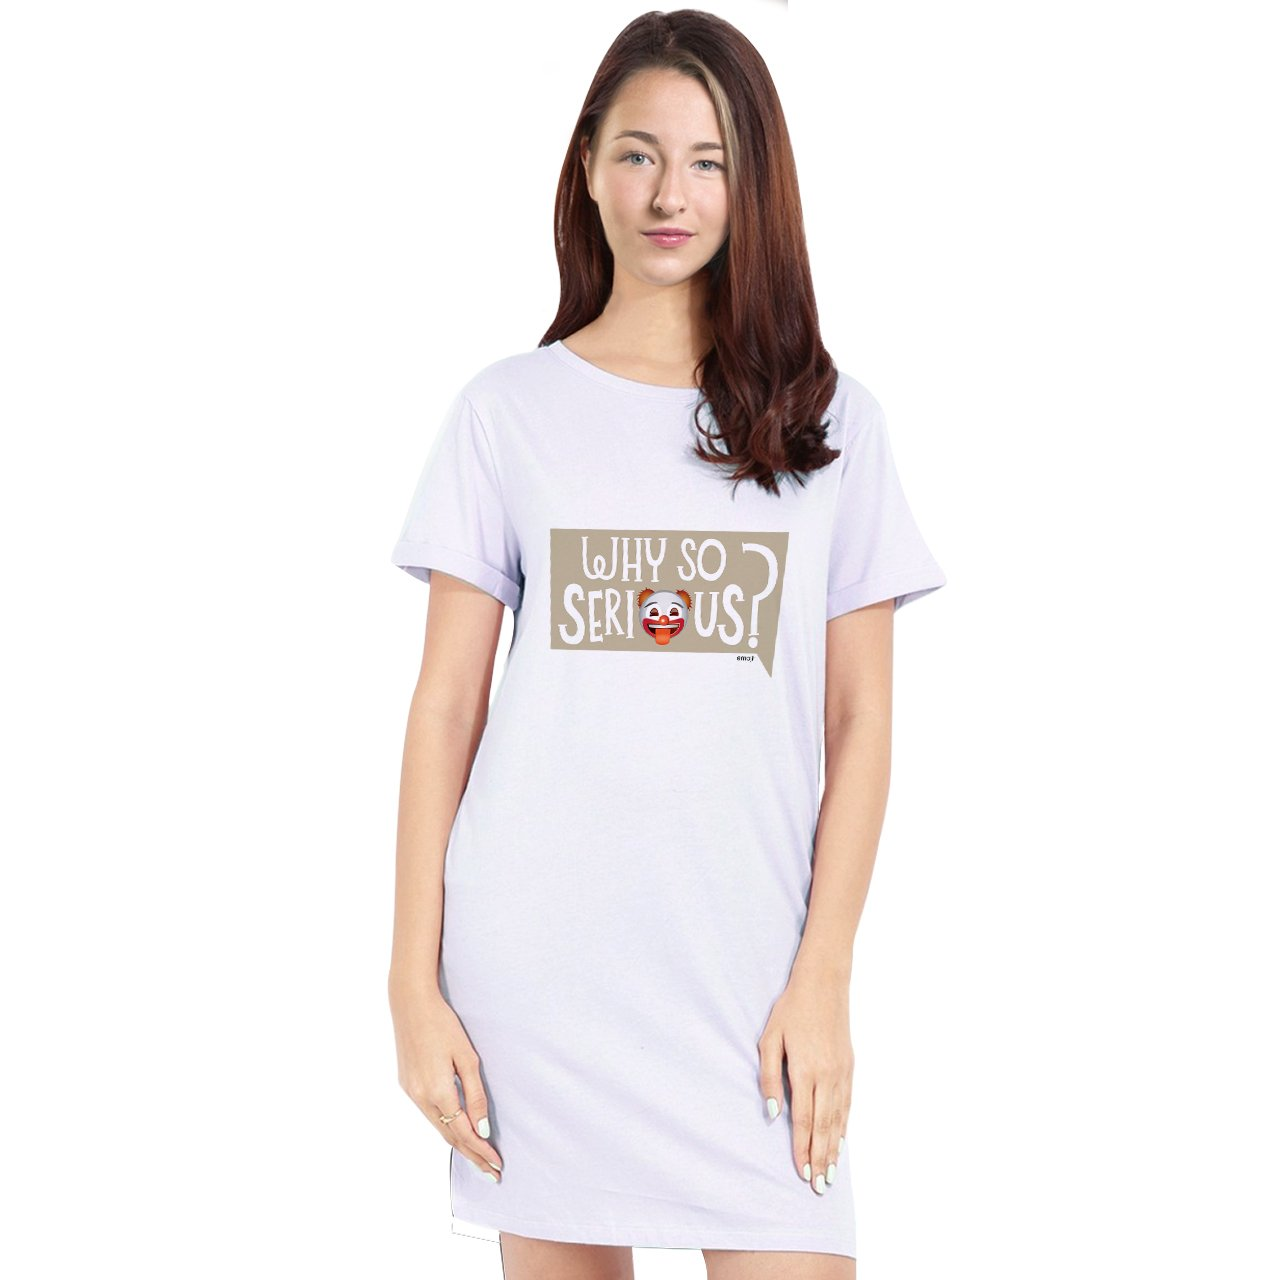 Official Licensed emoji Printed T-Shirt Dress for Women - Why So Serious?